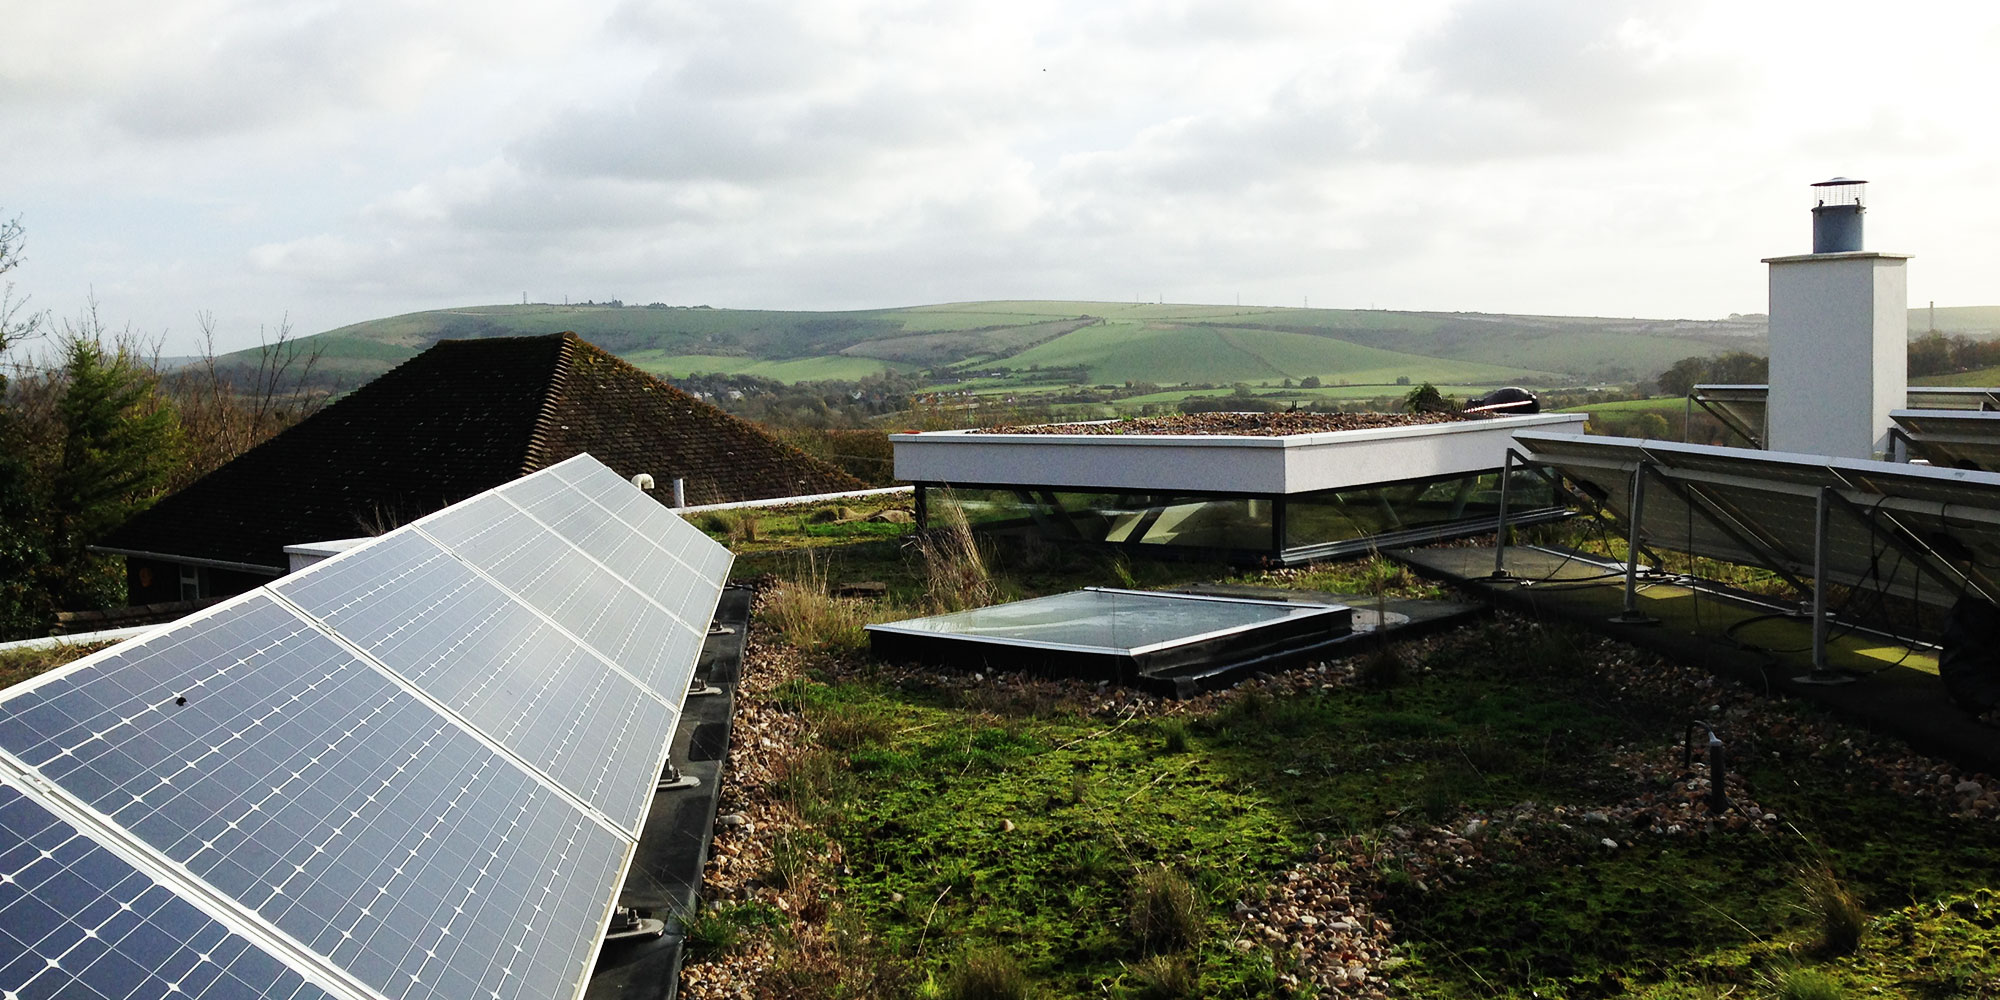 Example of a solar integration on a green roof by Organic Roofs